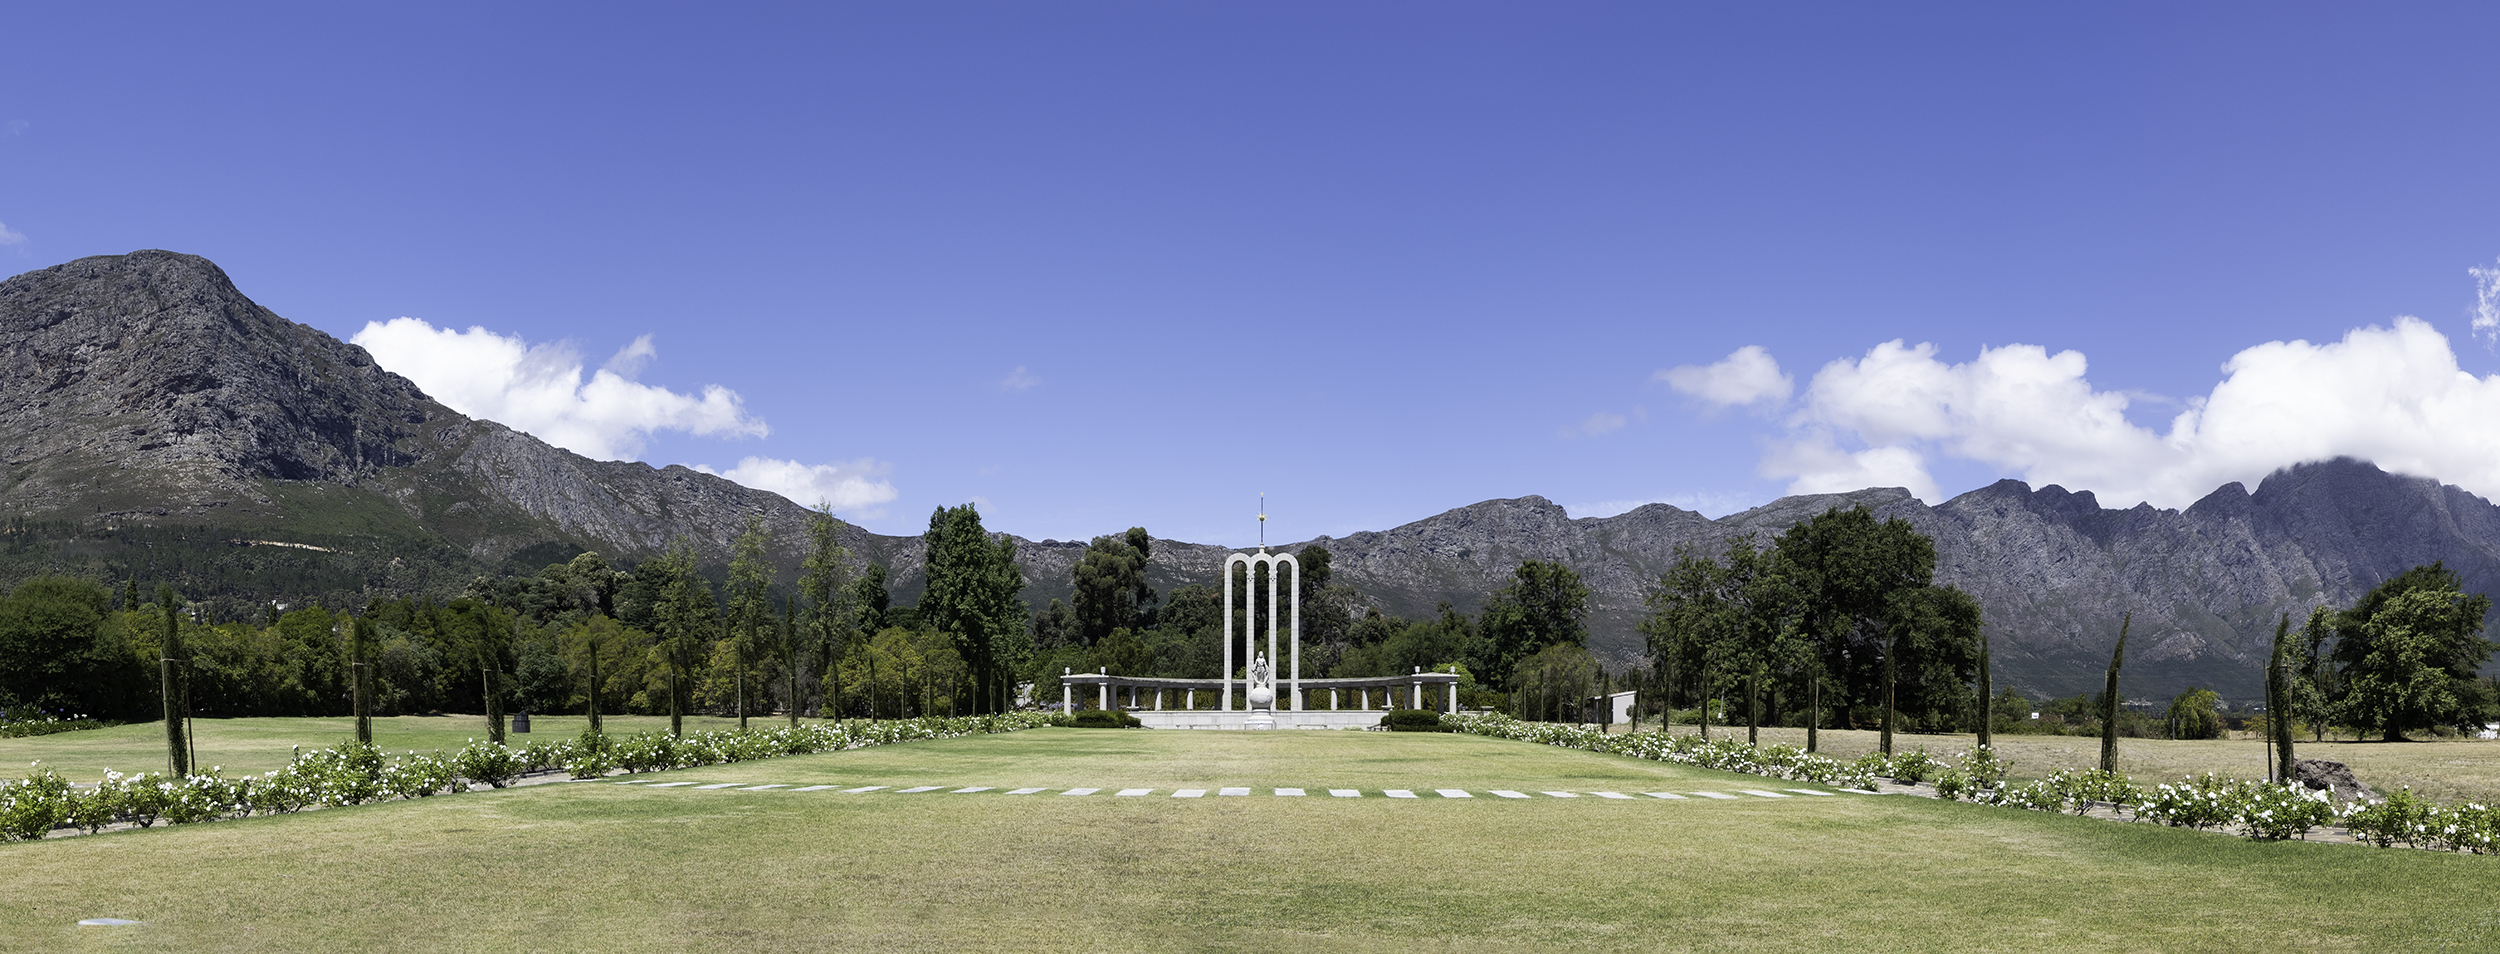 Huguenot Memorial, Franchhoek, SA, February Afternoon